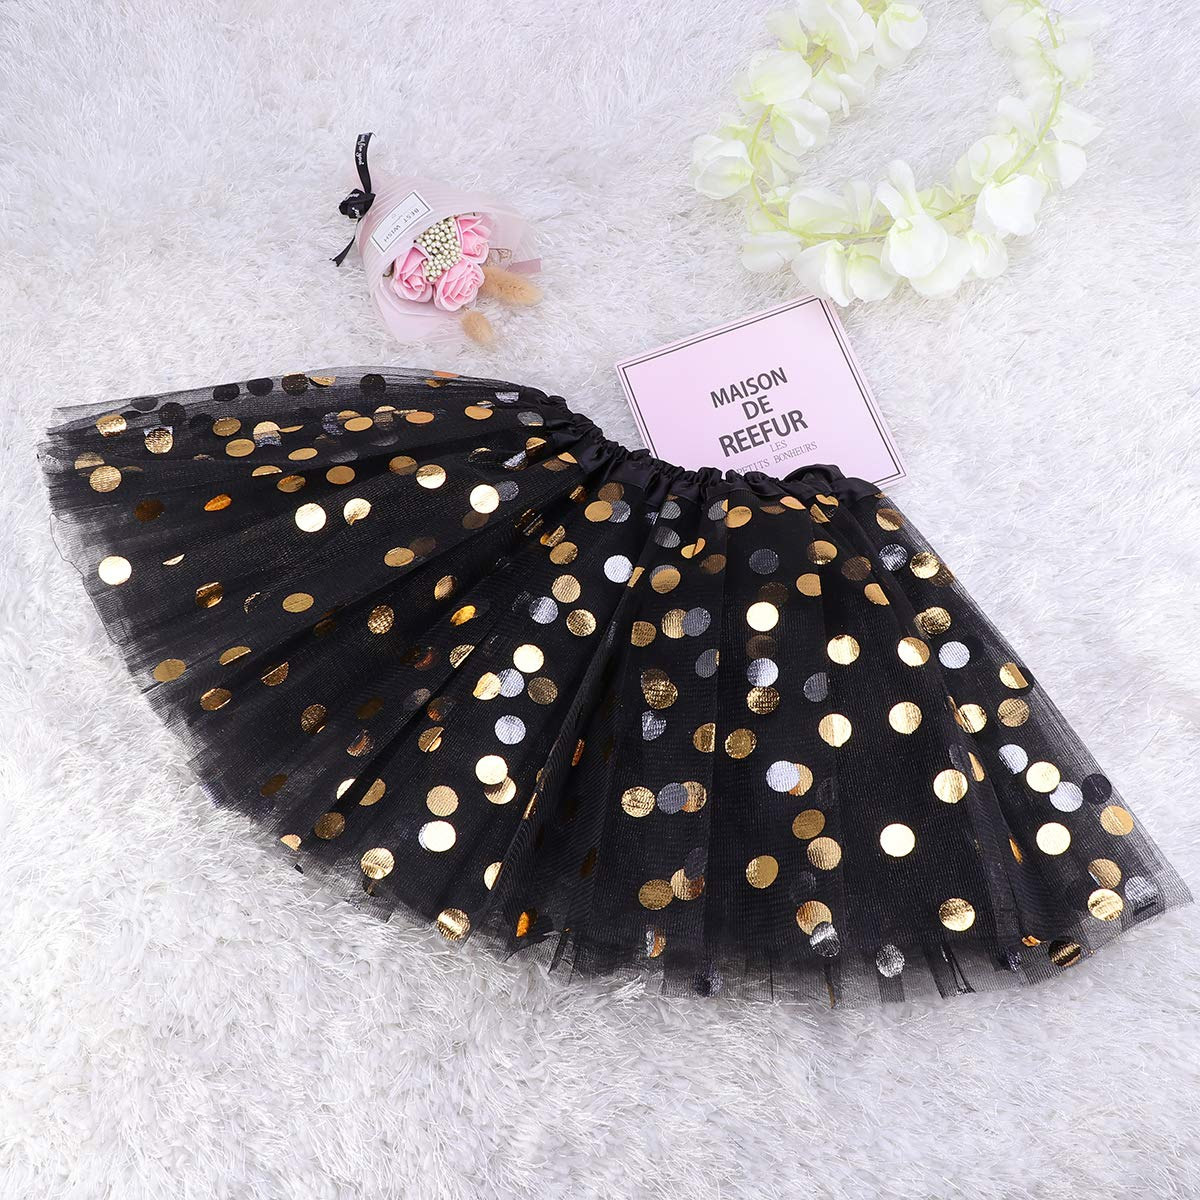 Black Amosfun Layered Tutu Skirt Girls Dotted Sequin Dance Ballet Dress-up Tulle Skirt for Party Banquet Holiday